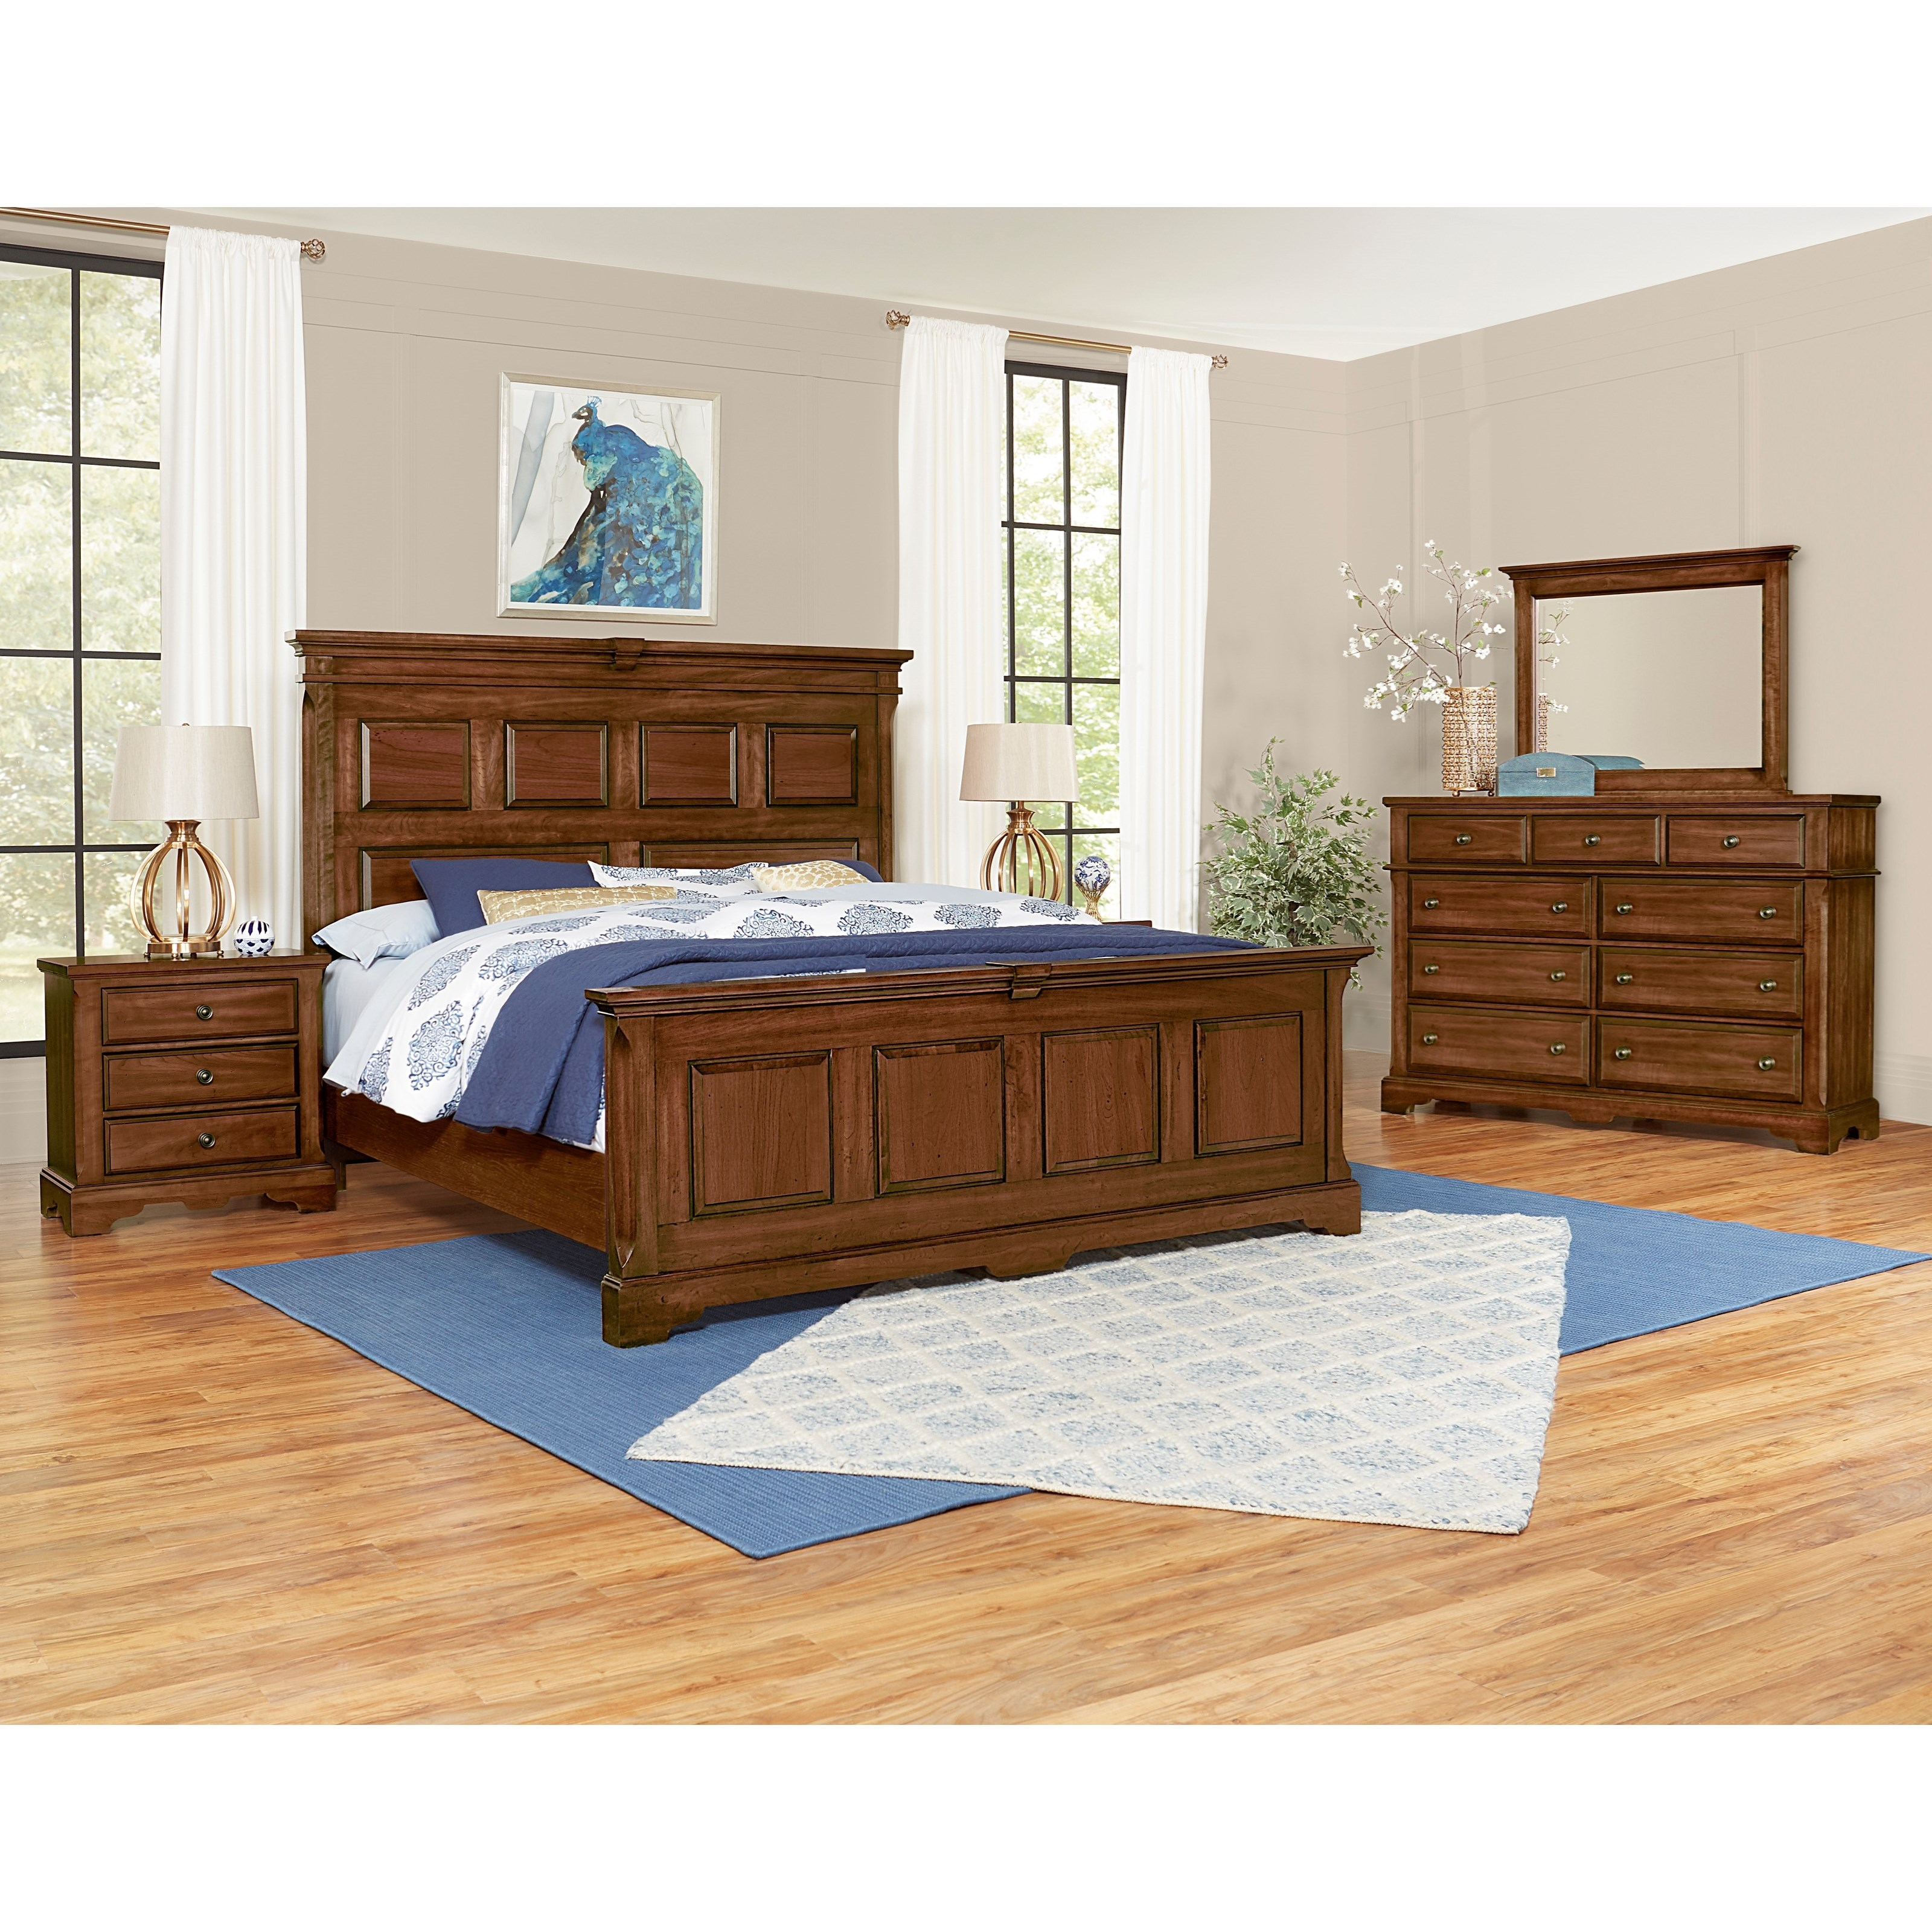 Heritage King Bedroom Group by Artisan & Post at Zak's Home